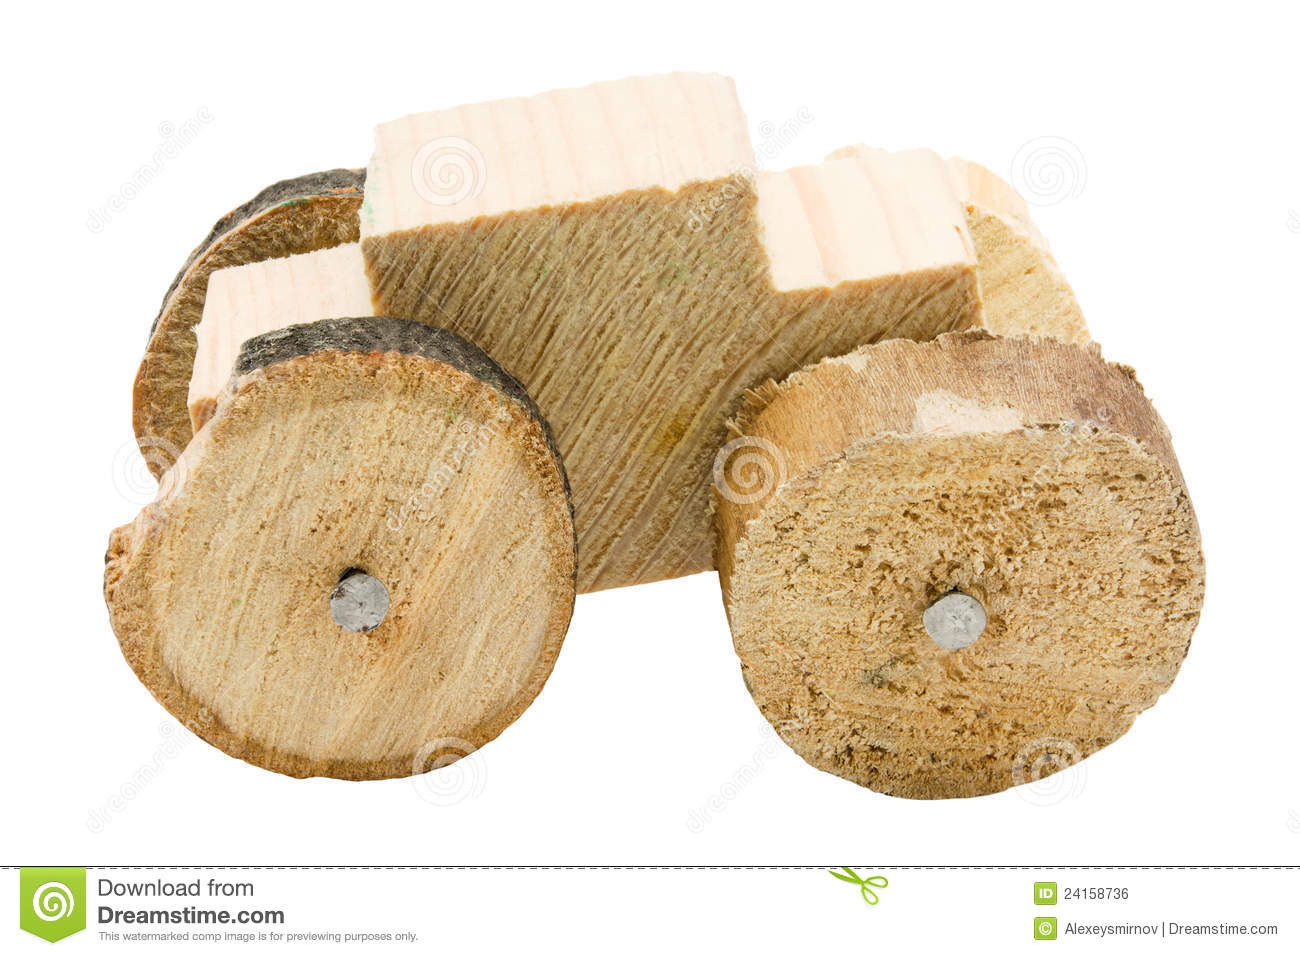 Homemade Wooden Car Toy Royalty Free Stock Image - Image: 24158736